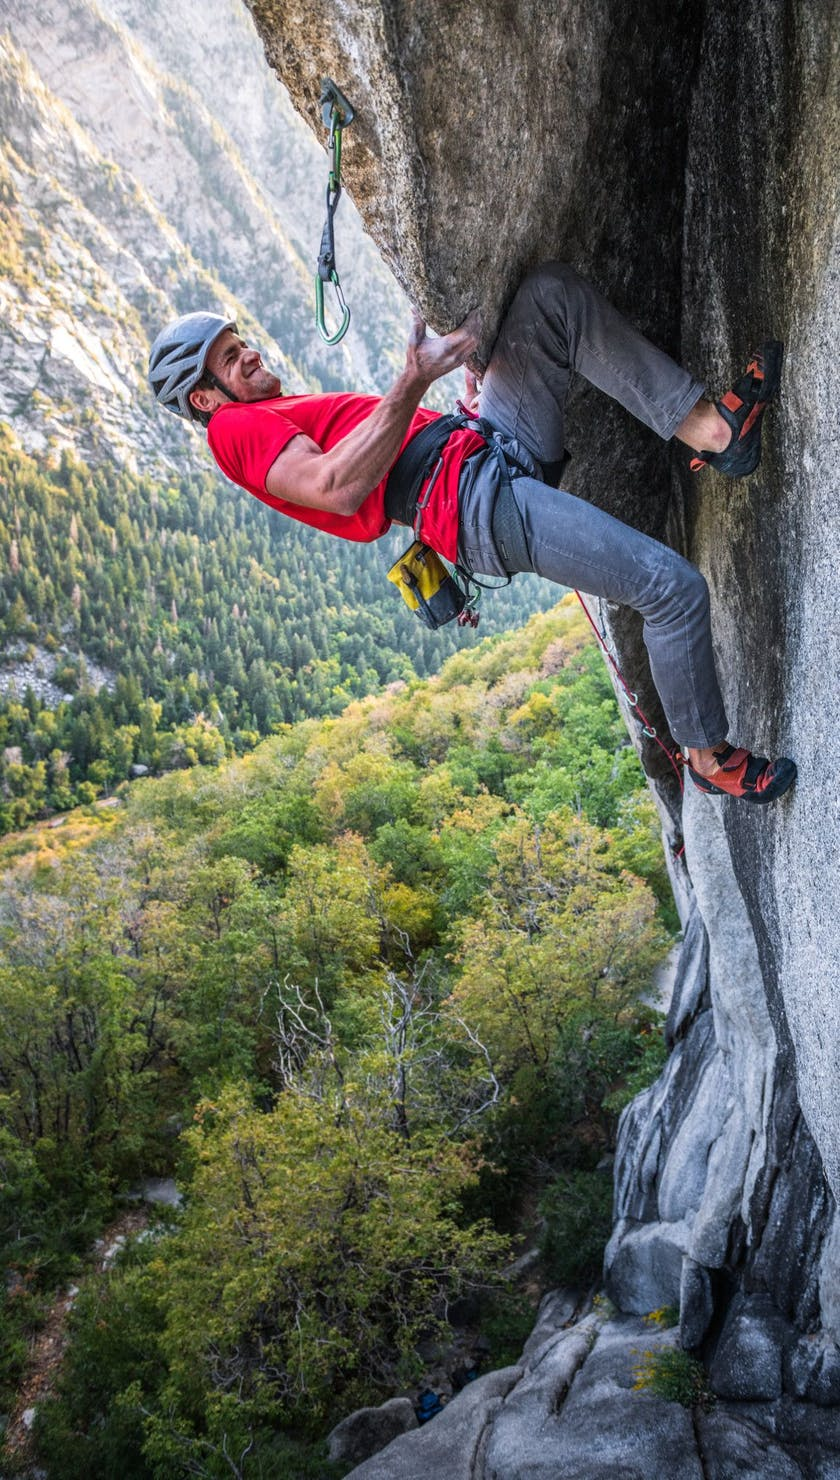 Man rock climbing with solution guide harness